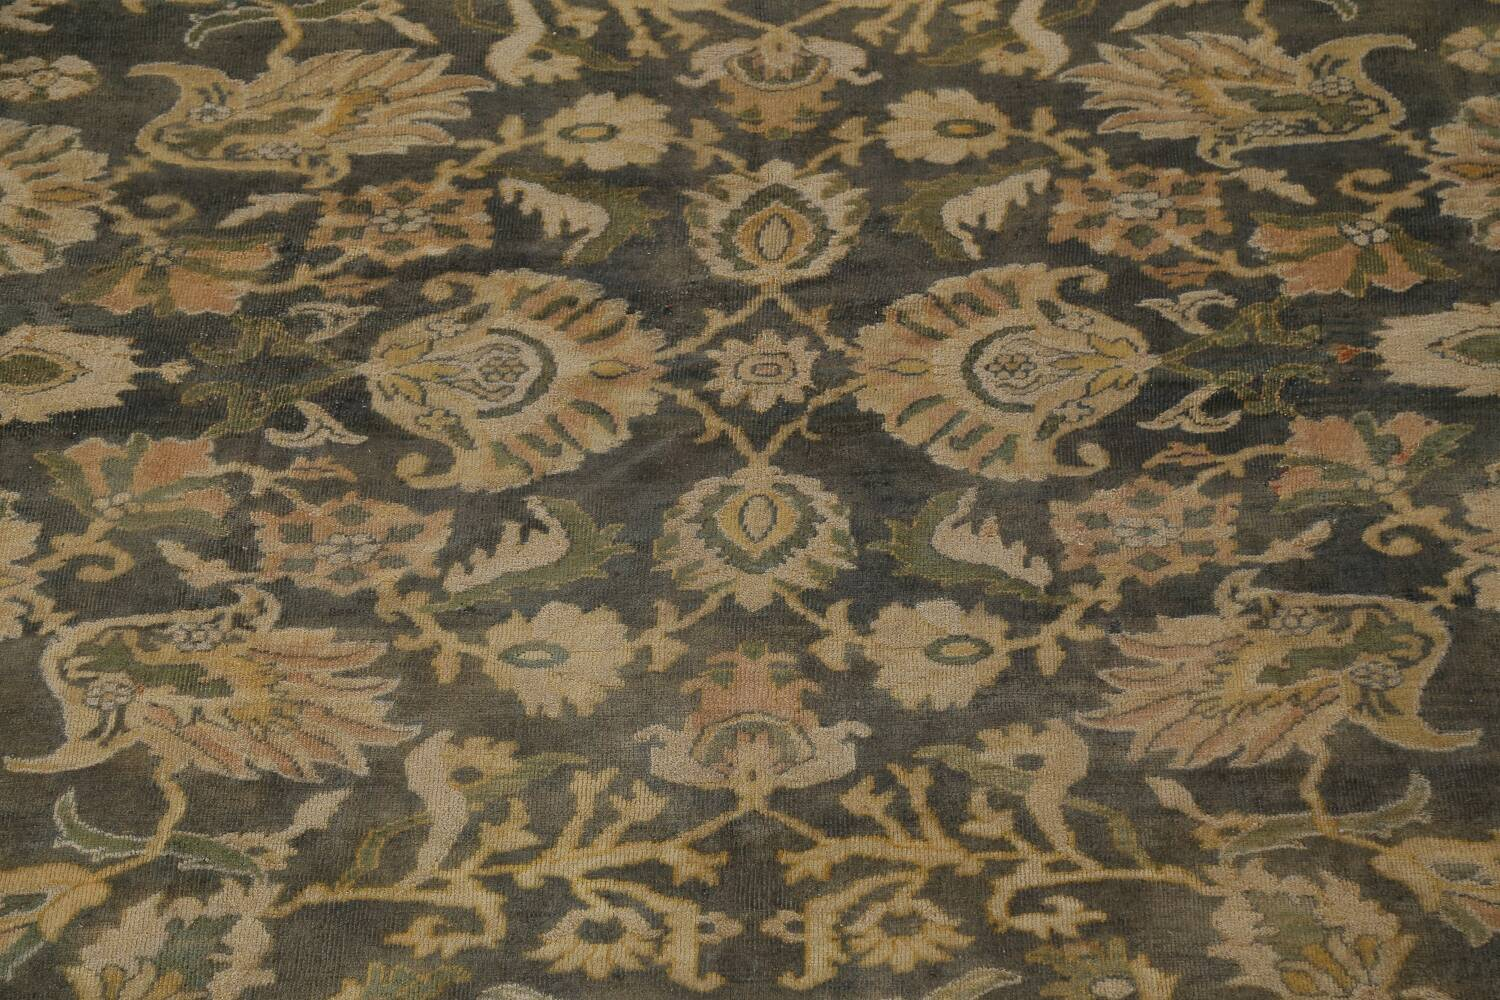 Pre-1900 Antique Vegetable Dye Sultanabad Persian Rug 12x16 image 4